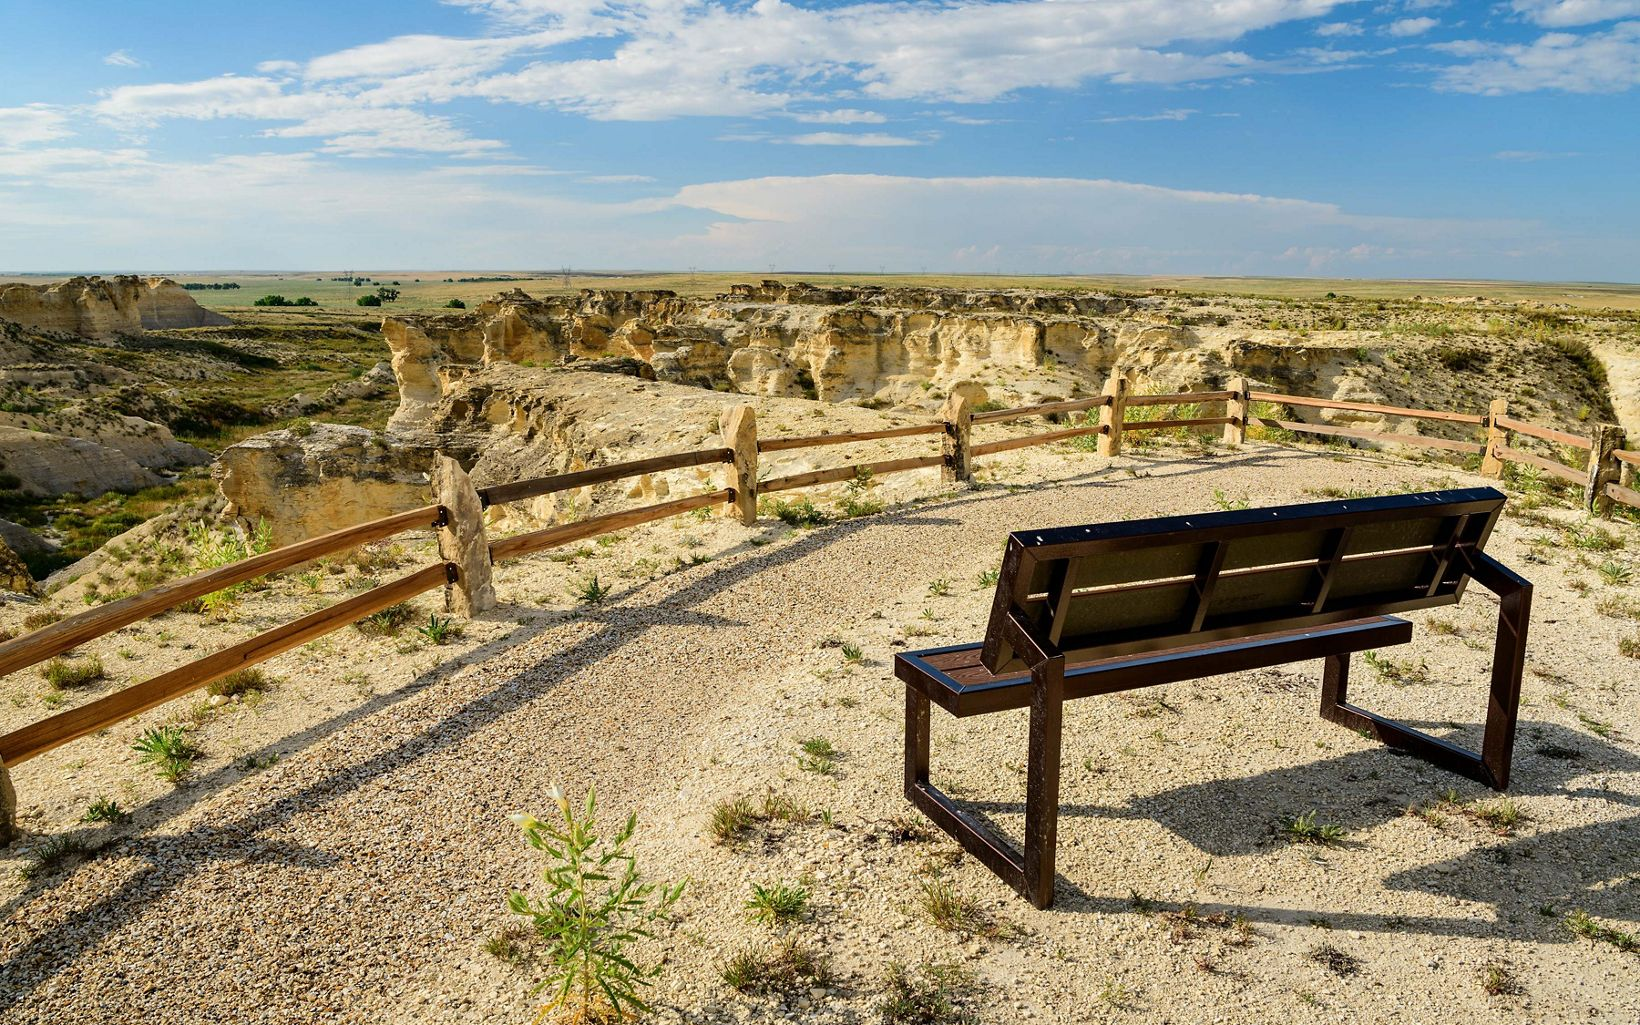 Take a moment to stop at Little Jerusalem Badlands State Park. The Rockies might take your breath away, but the spacious Kansas landscape will give it back again.